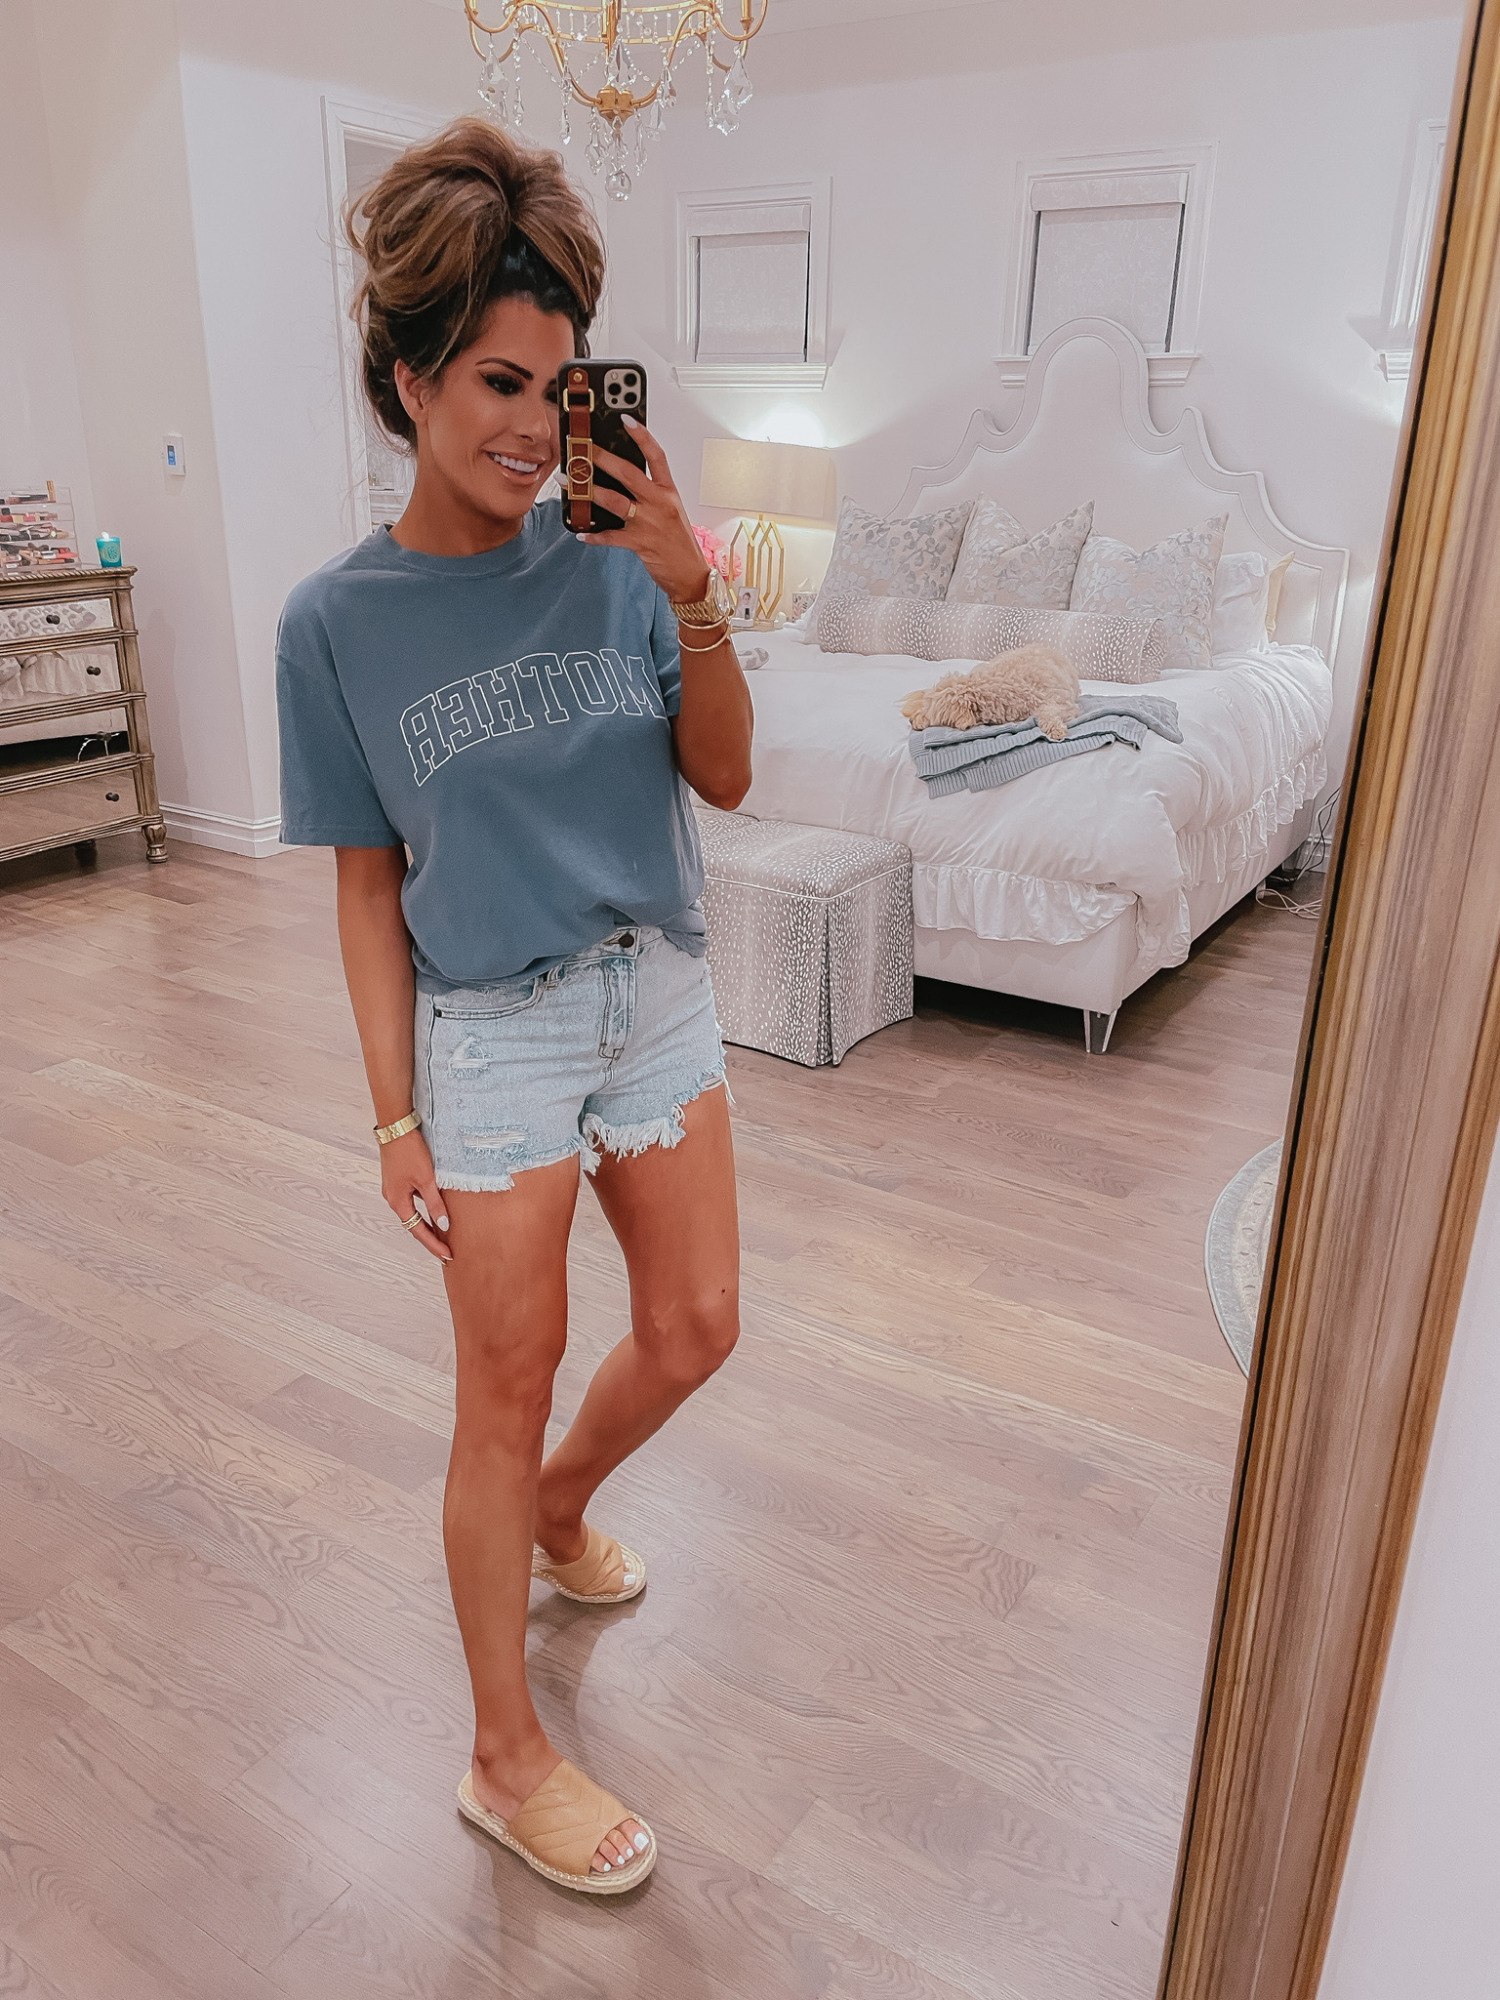 Mother T-Shirt, Cute T-Shirt, Denim Shorts, Affordable Denim Shorts, Slide Sandals, Nude Slide Sandals, Emily Ann Gemma, Mother's Day Gift Idea, Jean Shorts  VICI Fashion by popular US fashion blog, The Sweetest Thing: image of Emily Gemma wearing a VICI Mother t-shirt, cut off denim shorts, and tan slide sandals.